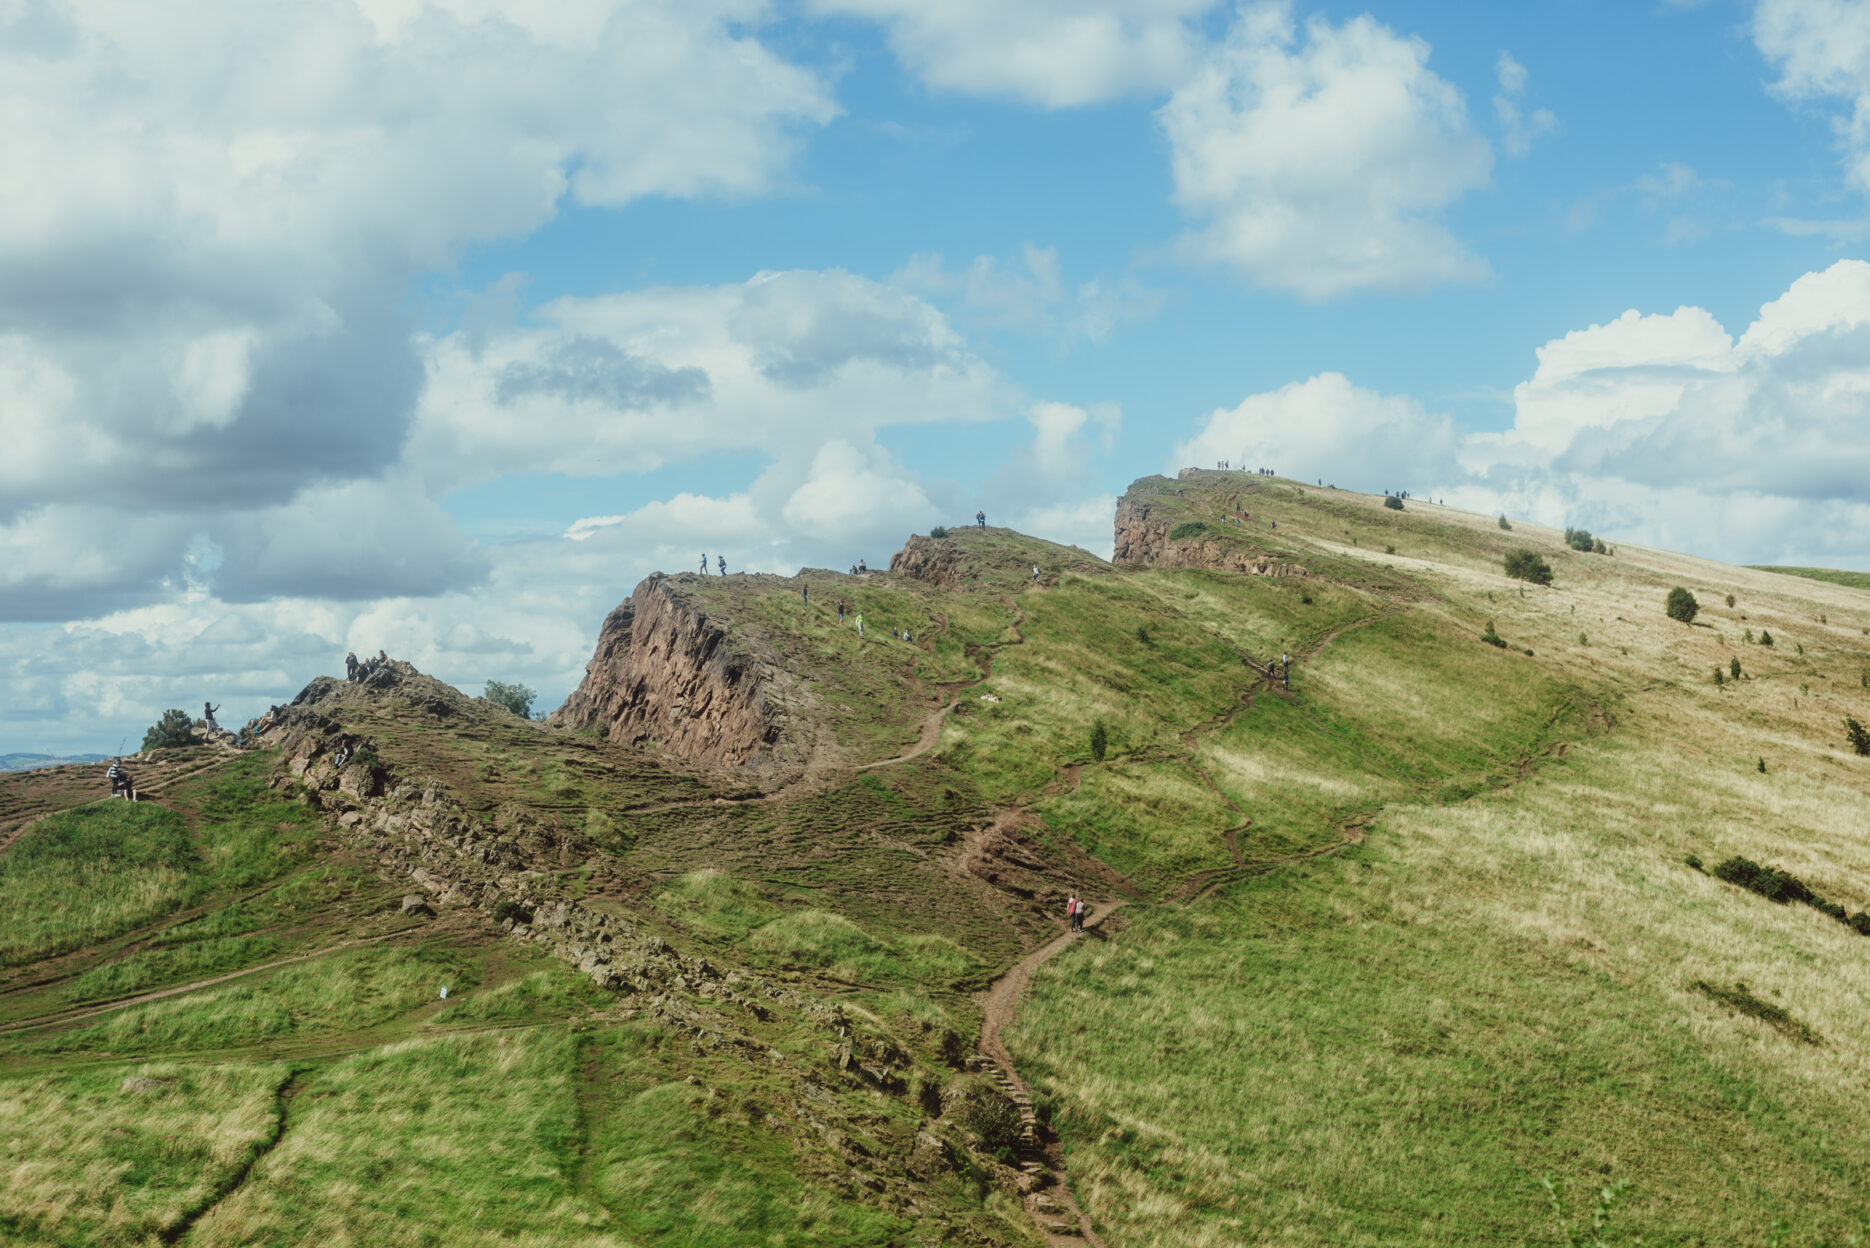 People walking the green heights of Arthur's seat